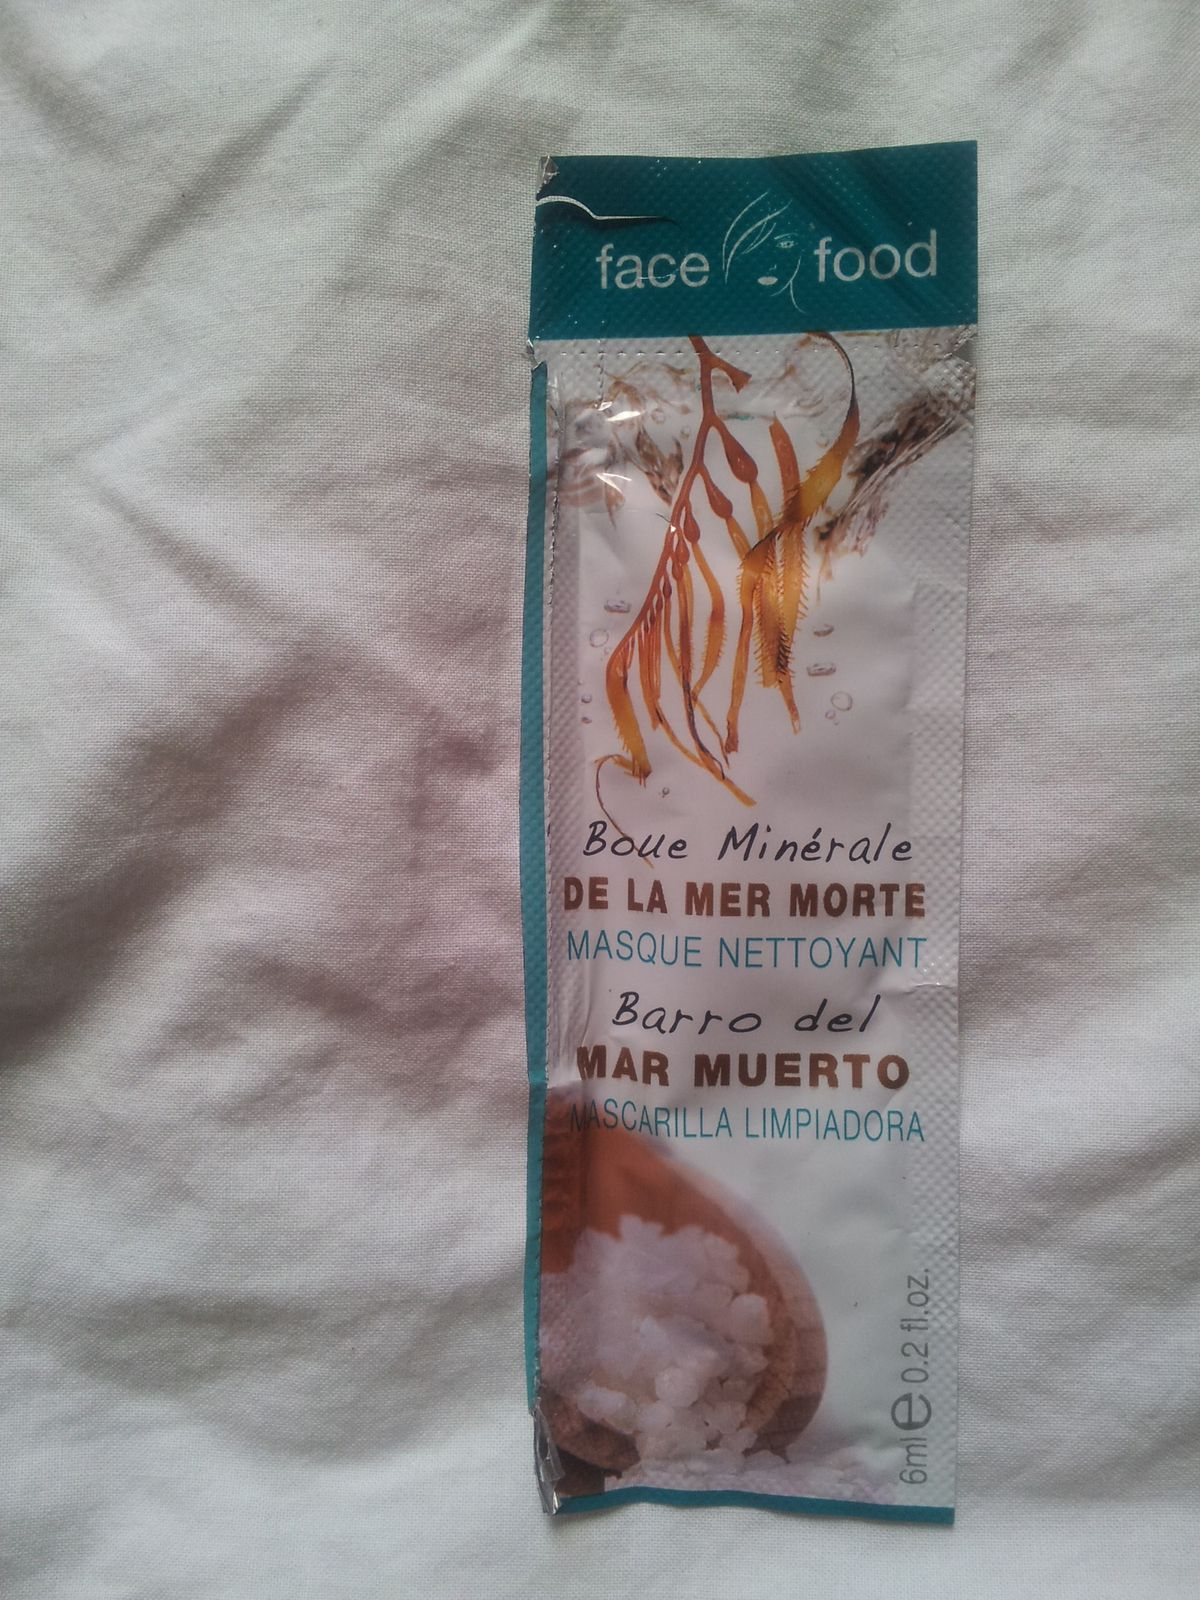 Masque nettoyant Face Food